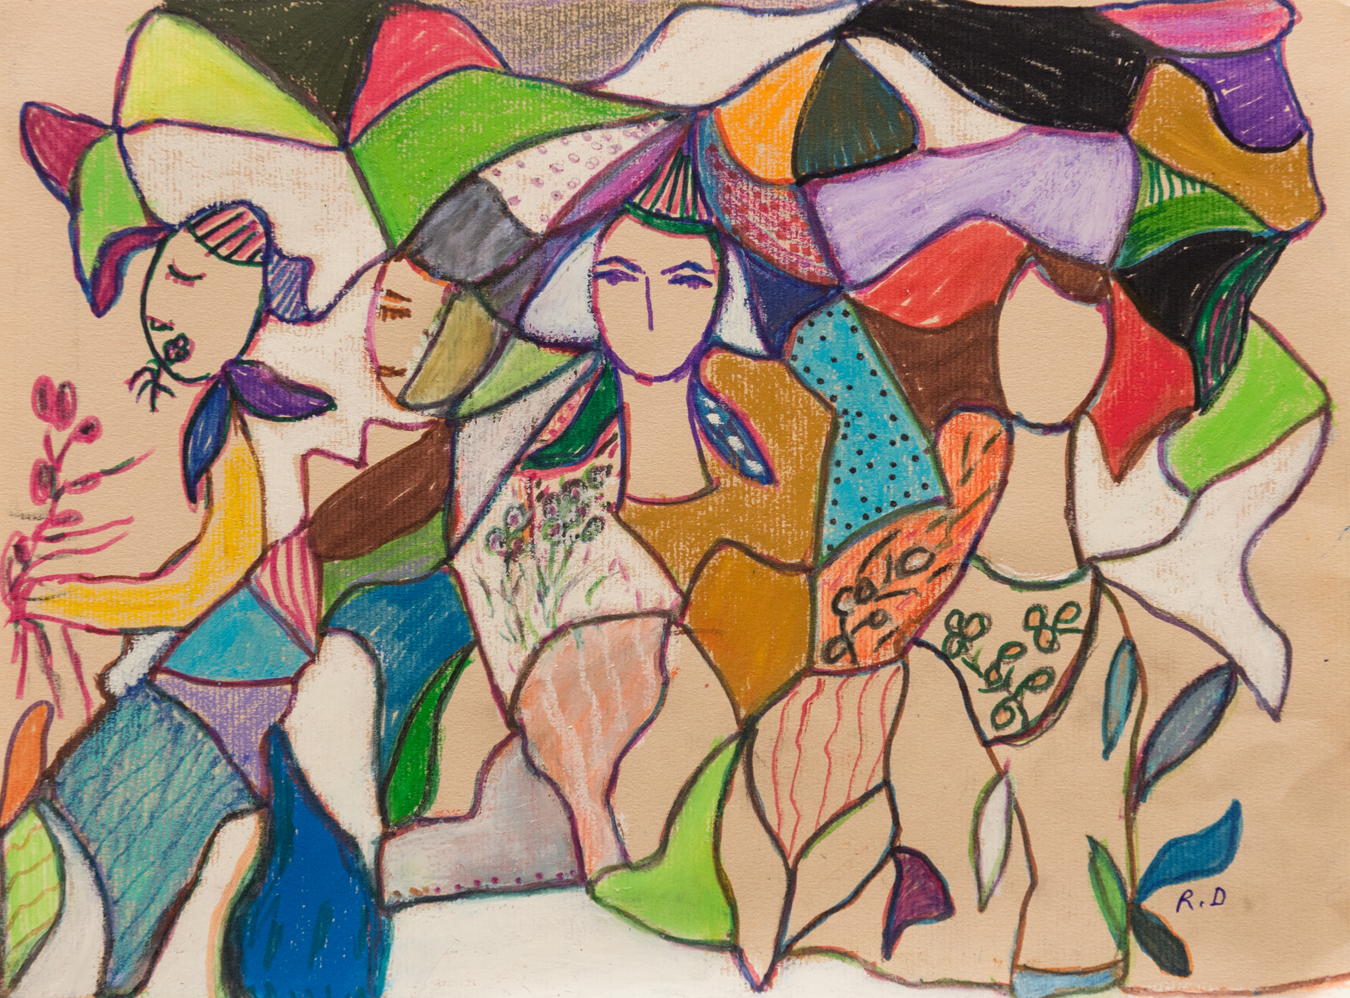 Carnaval artwork by Rita David - art listed for sale on Artplode